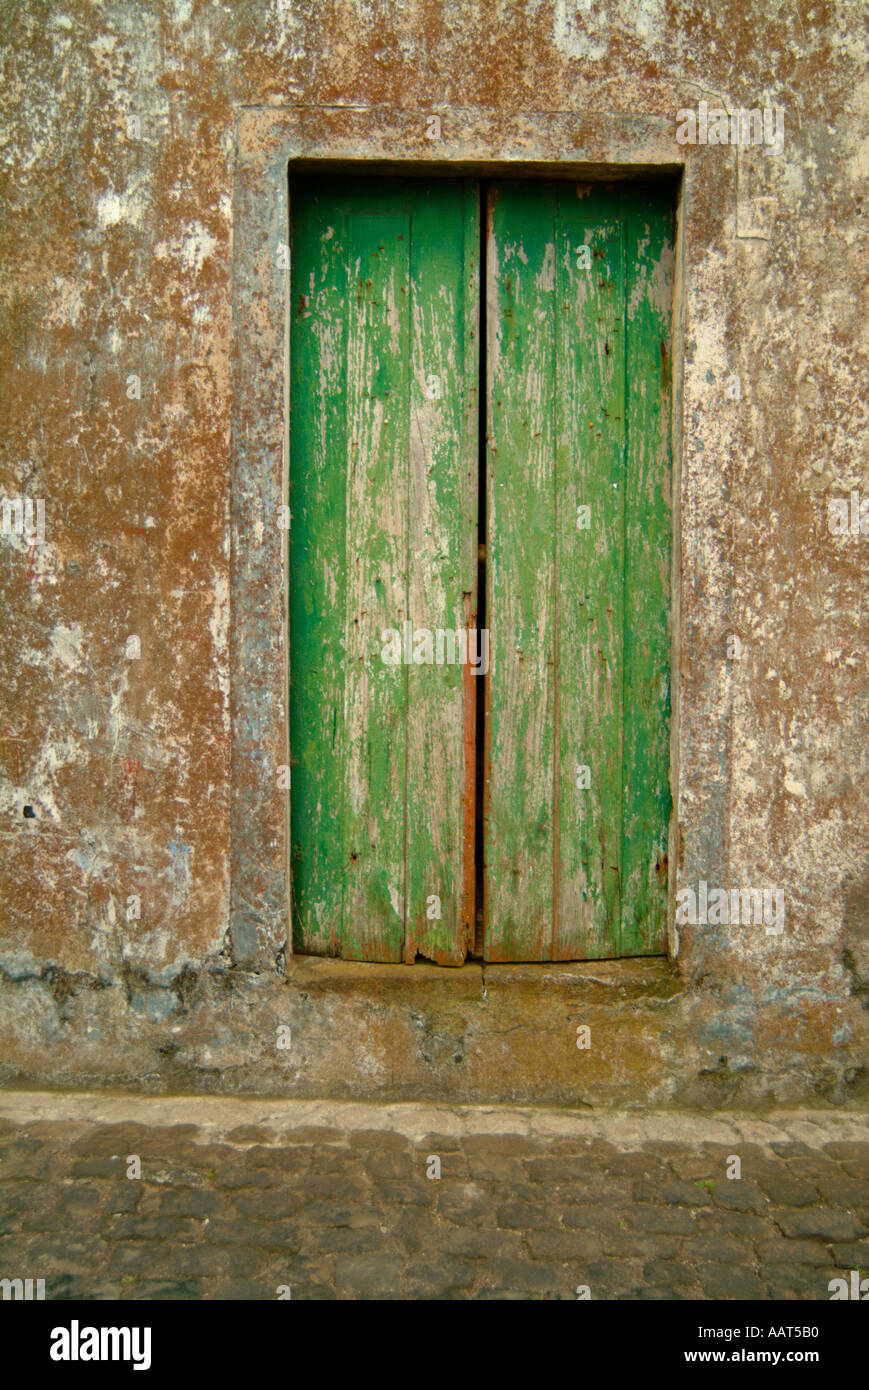 A rustic door in a residential neighborhood in the Azores, Portugal. - Stock Image